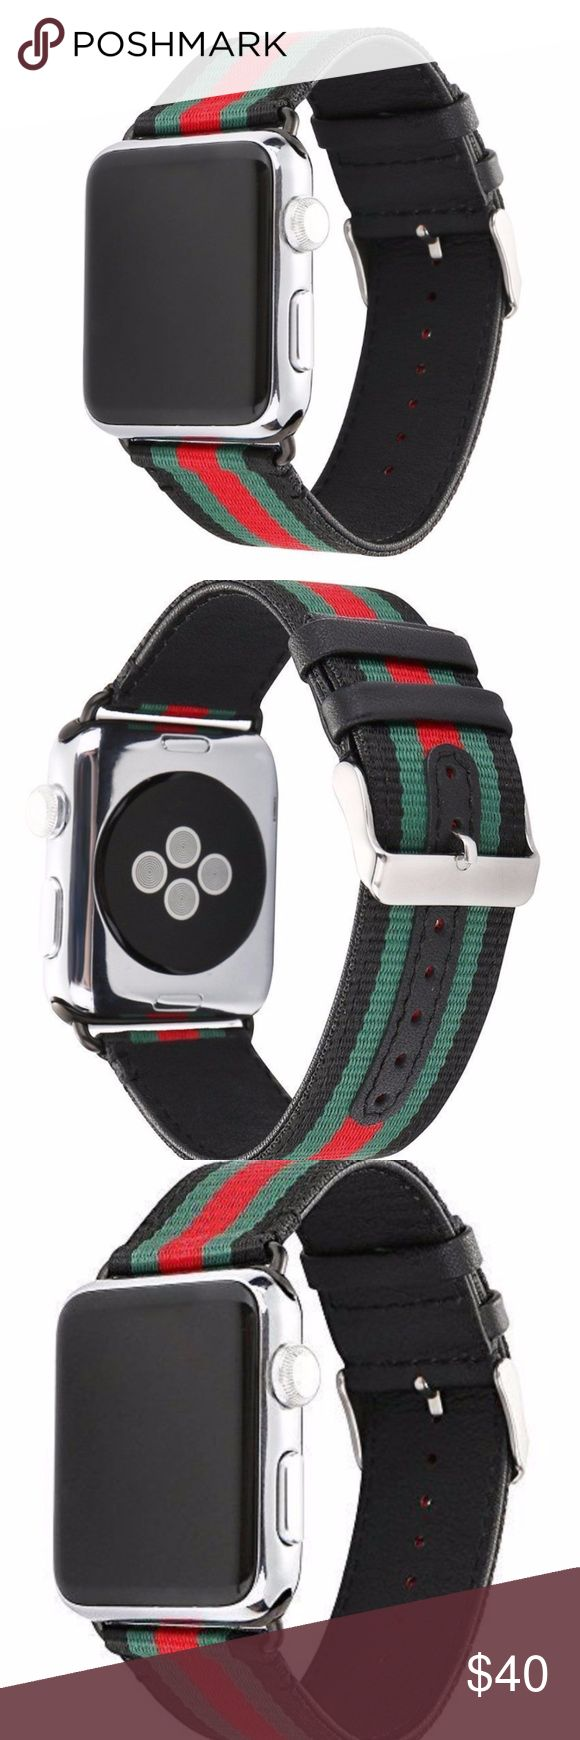 RedBlackGreen Pattern Apple Watch Band 48mm-38mm These luxury designer bands are handmade with luxury quality materials.  The bands are designed for both men and women of all ages.  The installation is very simple and can be done in seconds.  You have the option to change the connector to other colors that may closely match the color of your watch.  These bands are sure to be a discussion piece when worn around friends. Accessories Watches